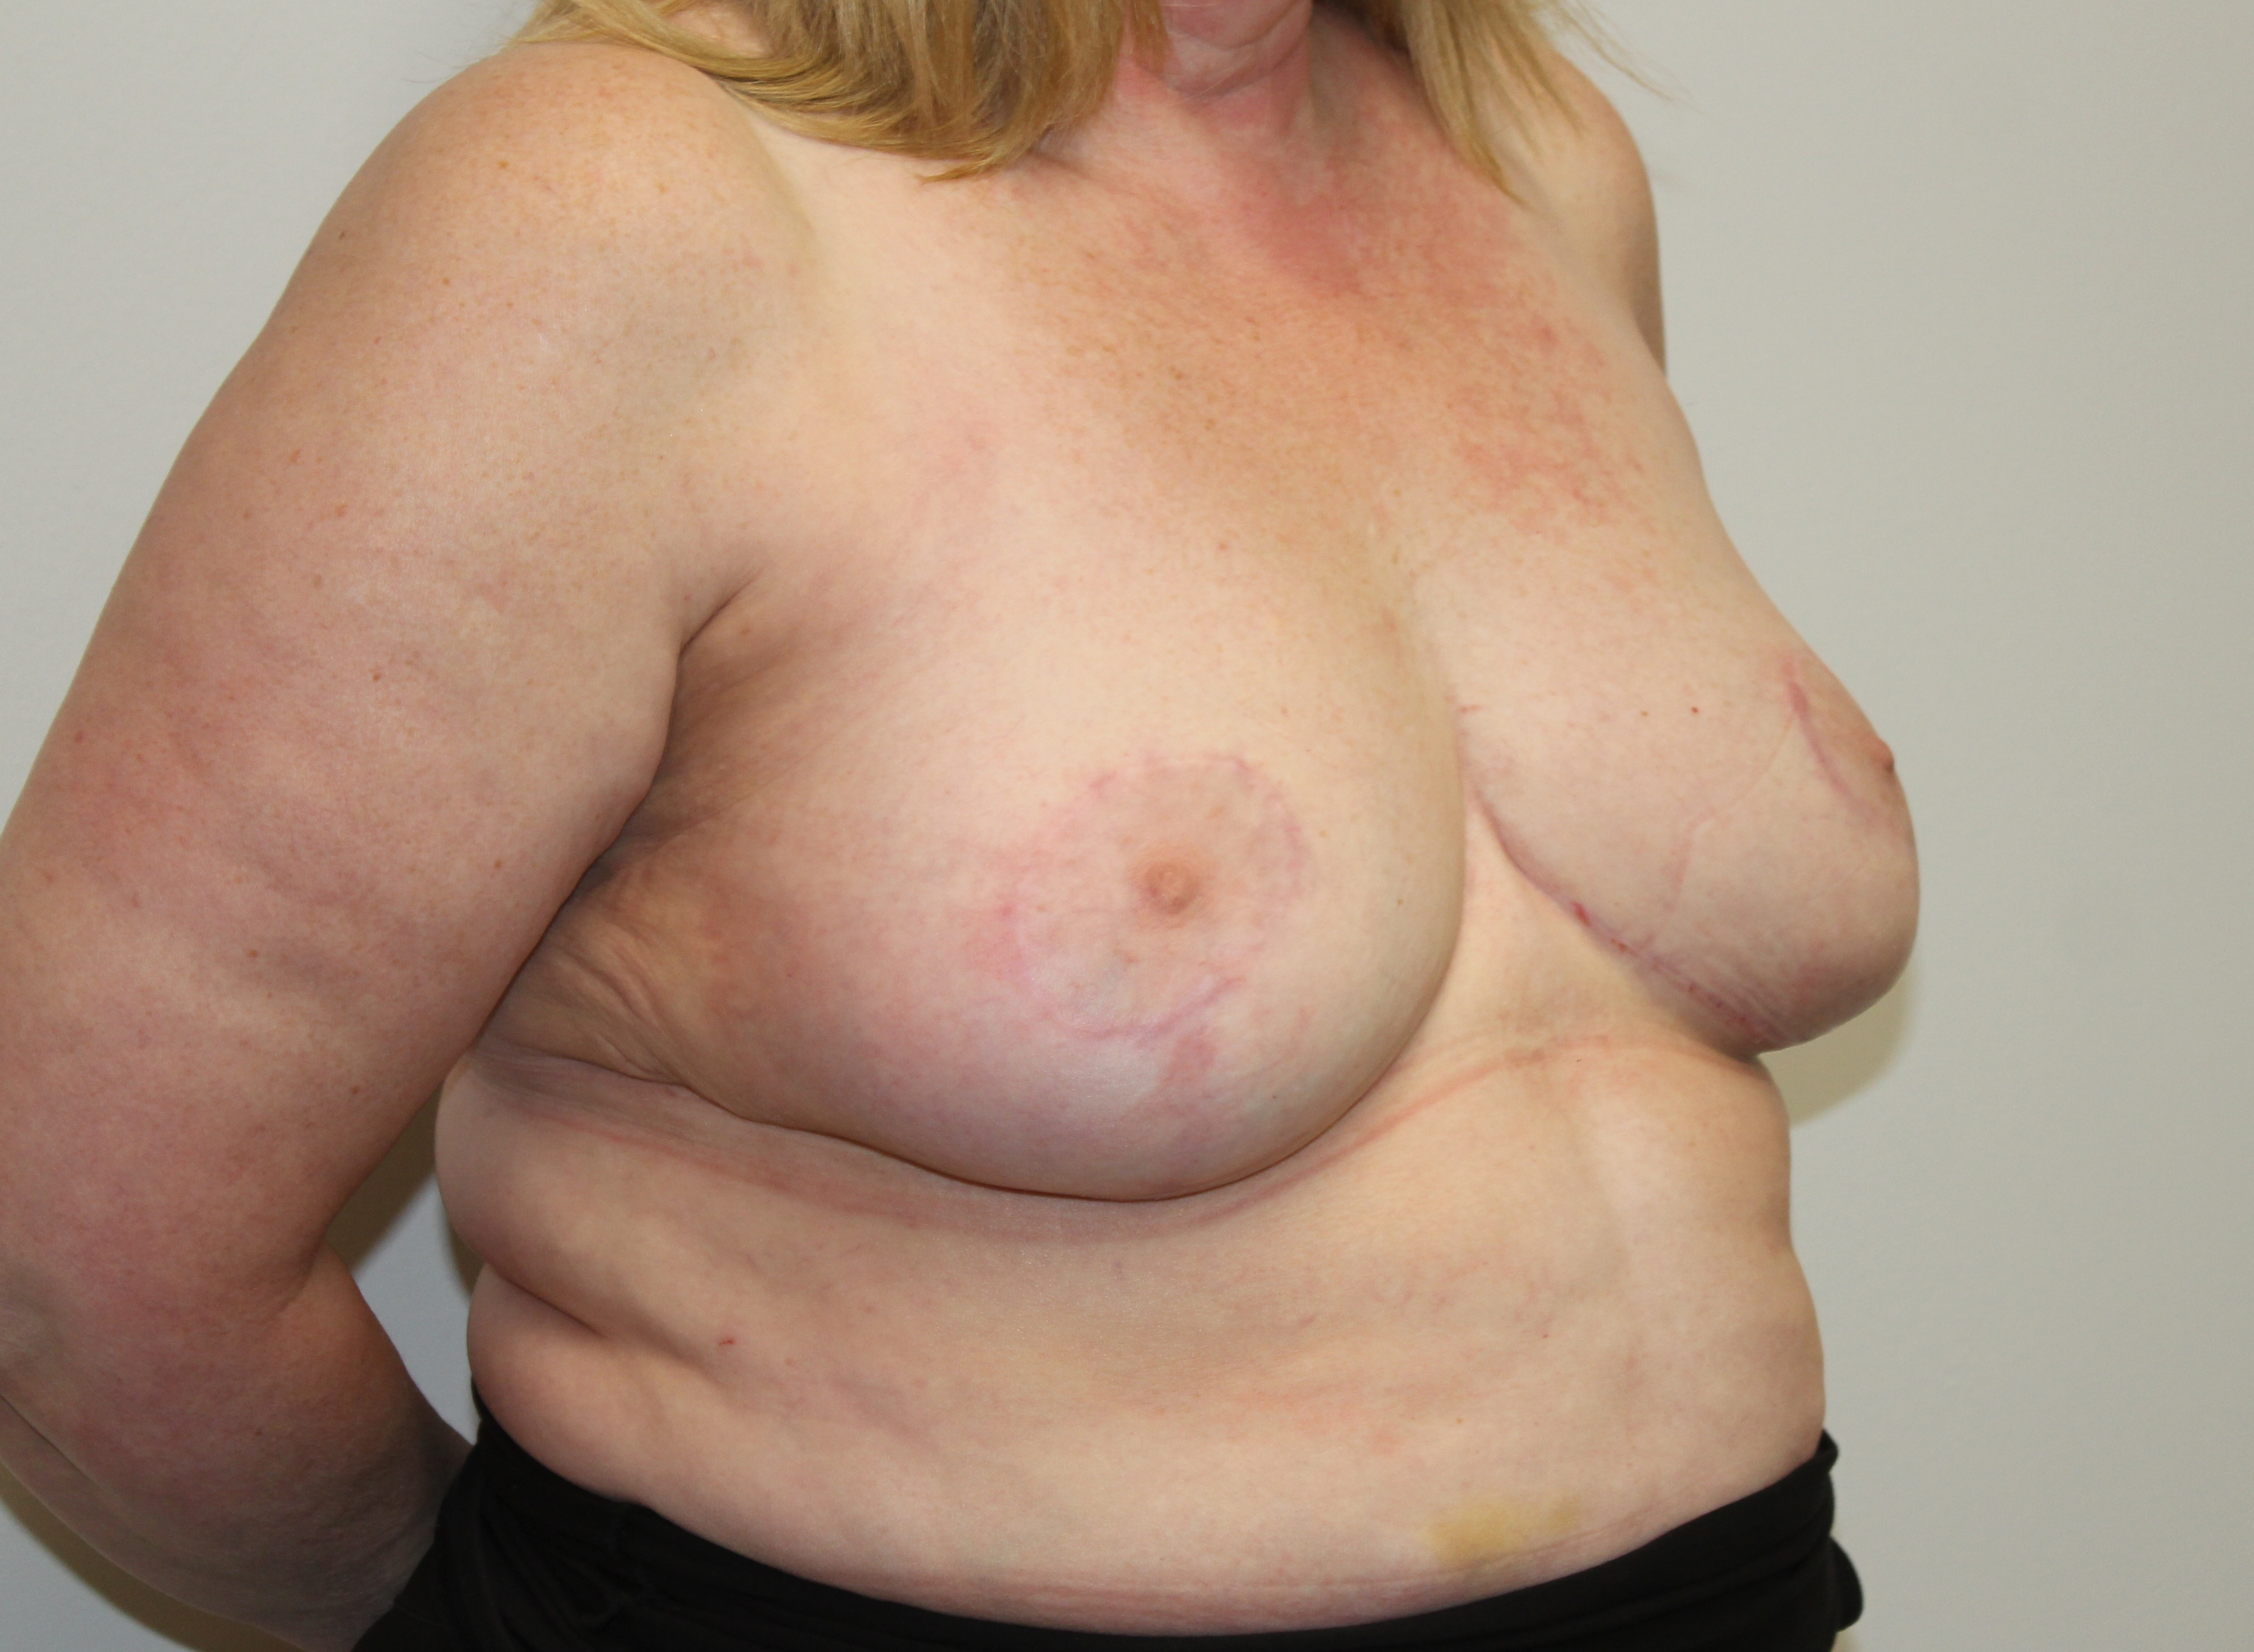 breast reduction picture jpg 853x1280